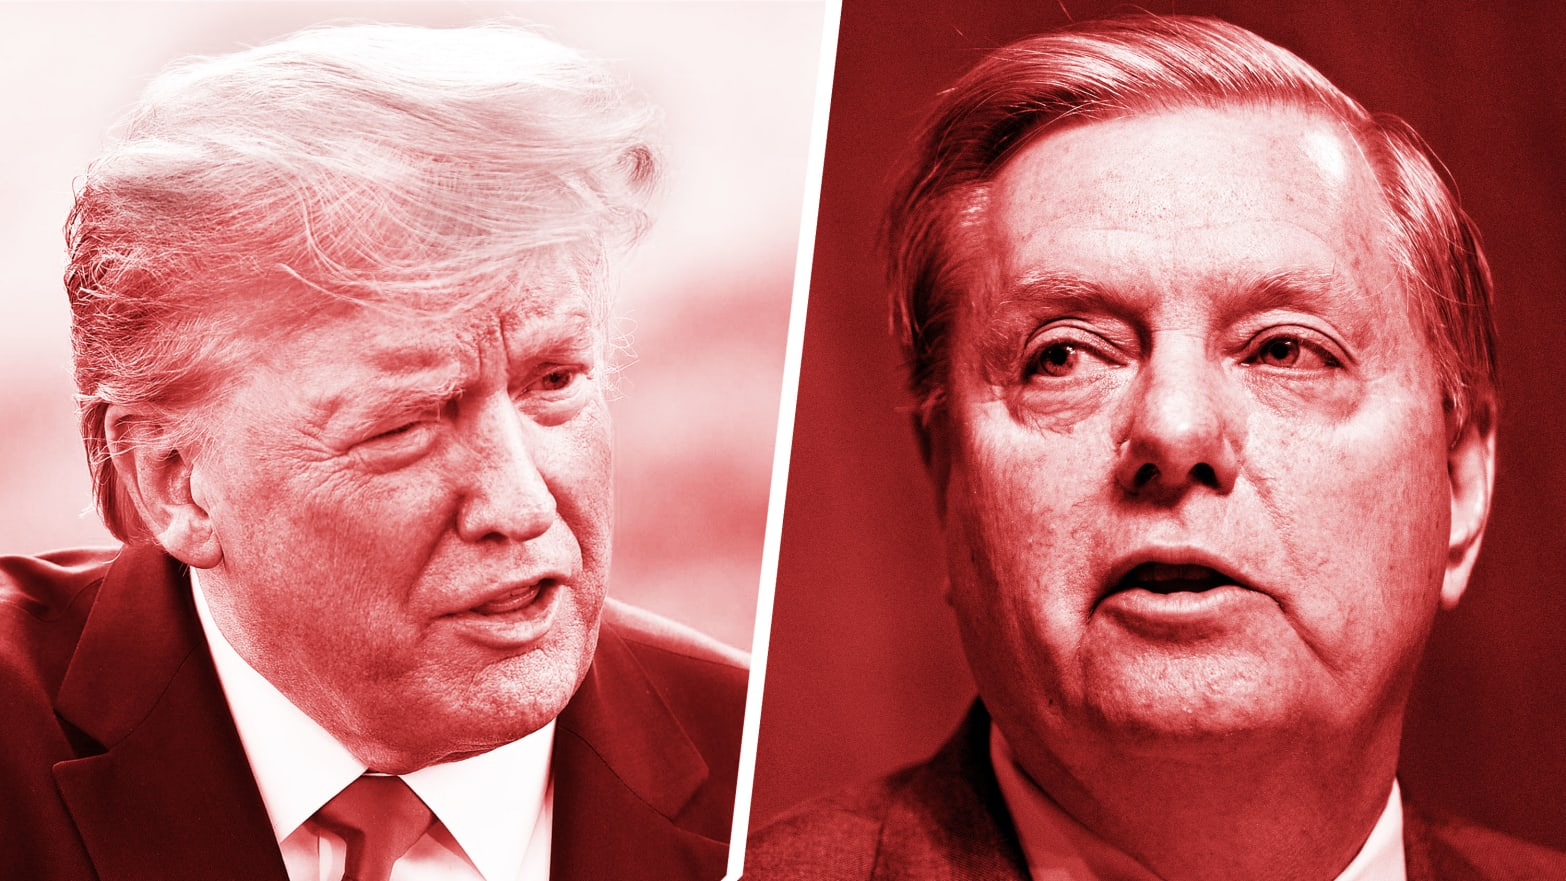 Trump Feuds With Lindsey Graham Over 'Weak' Iran Policy